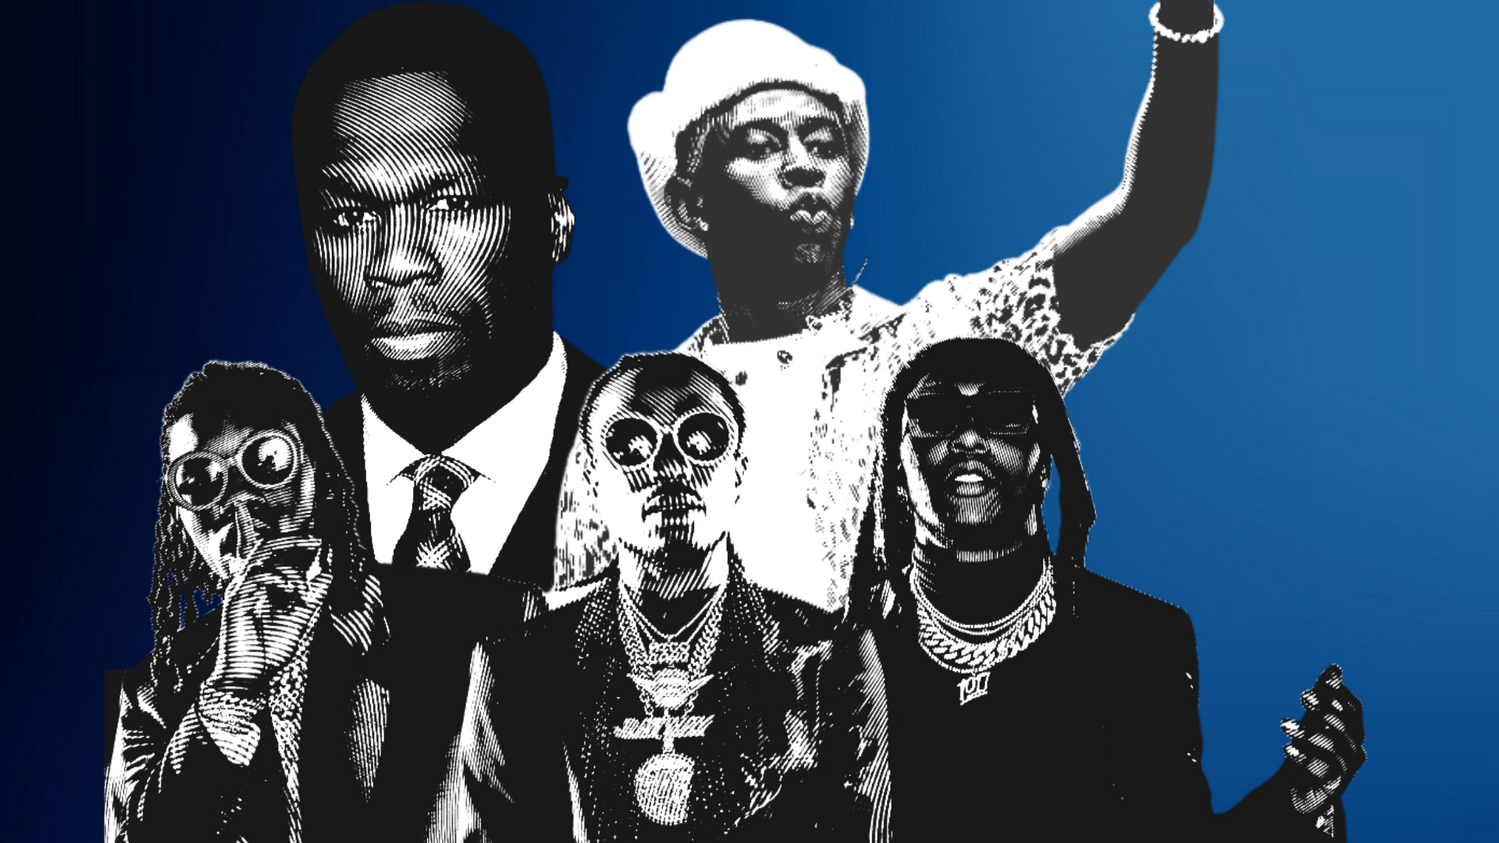 POLITICS UNUSUAL: WHAT IF THESE RAPPERS RAN FOR OFFICE?